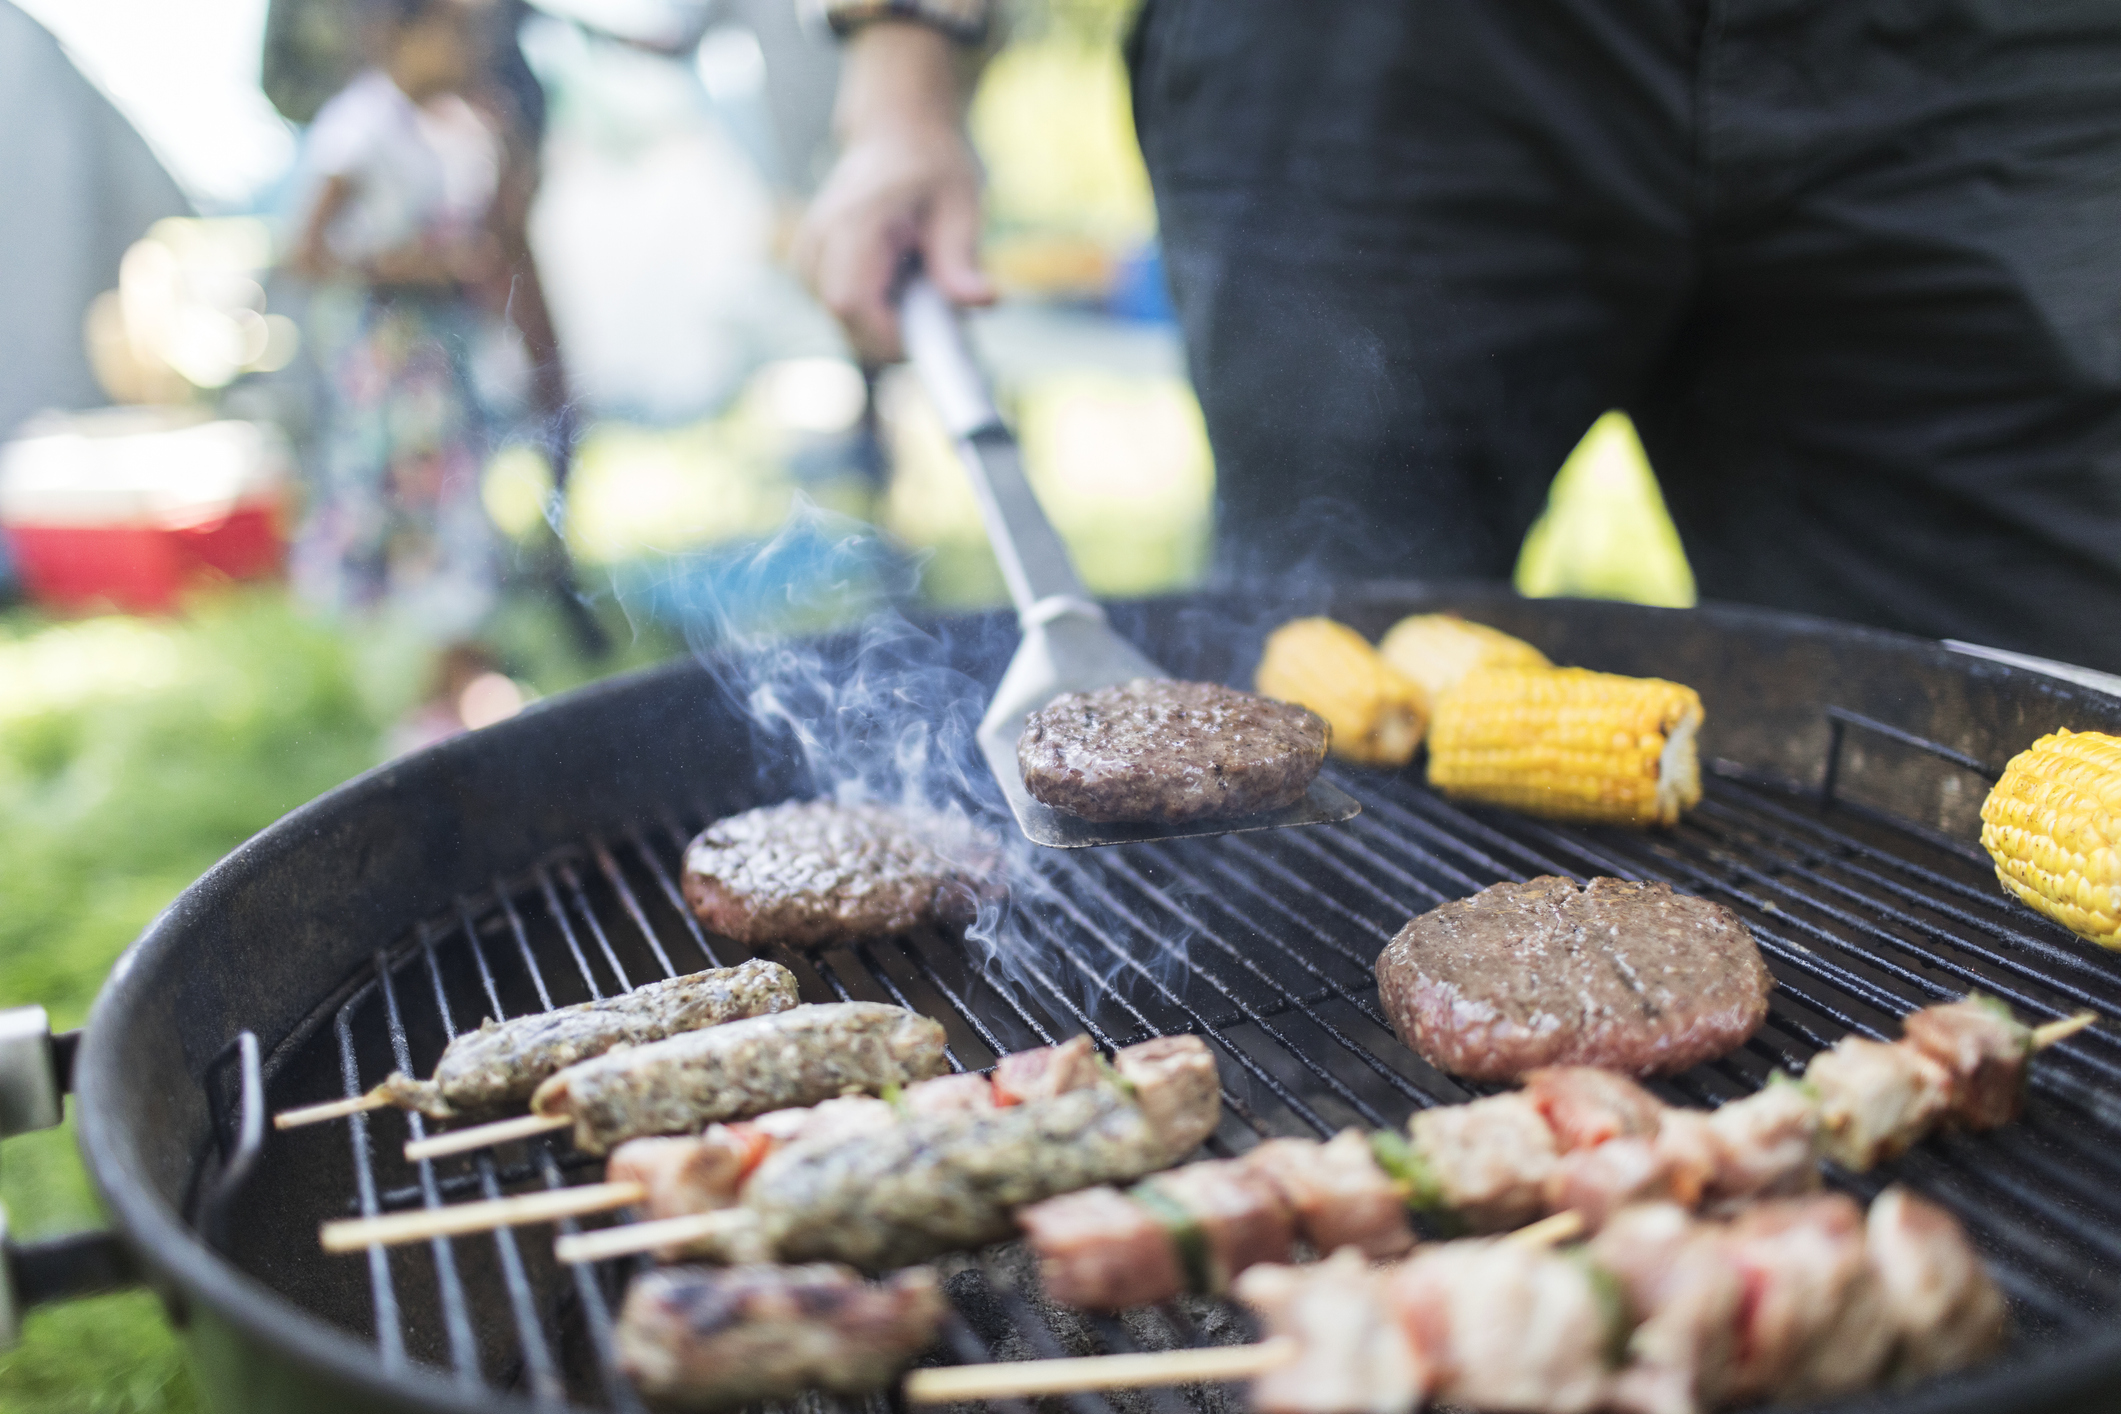 Massive Bbq Planned Next To Home Of Vegan Who Sued Neighbors Over - Meat Smoker In Australia